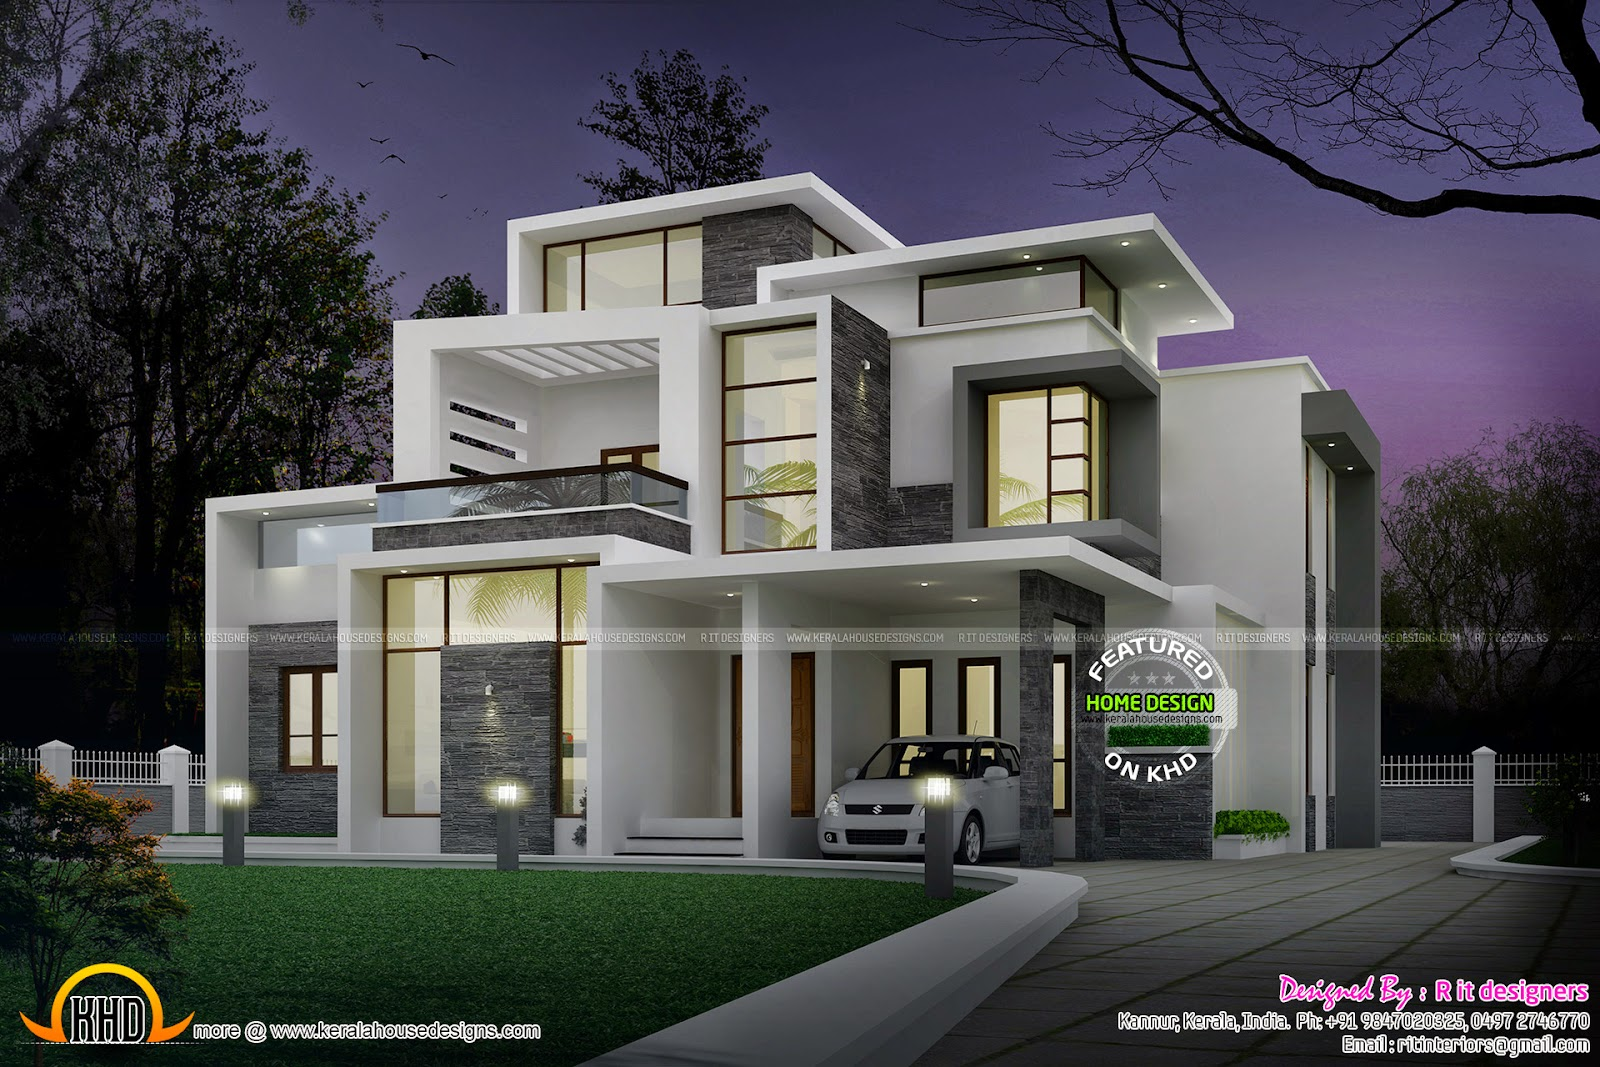 Grand contemporary home design kerala home design and for Modern home designs plans